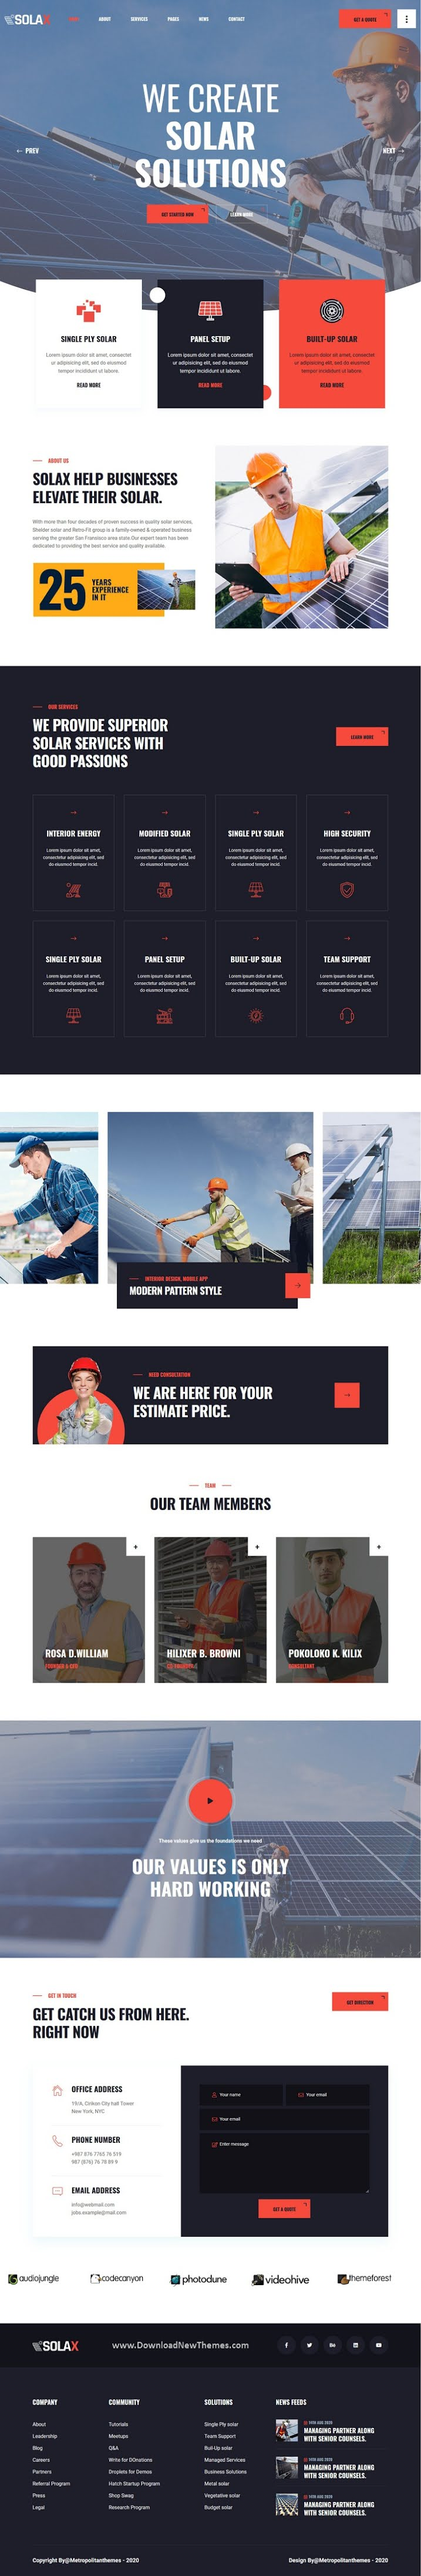 Best Solar Company Website Template